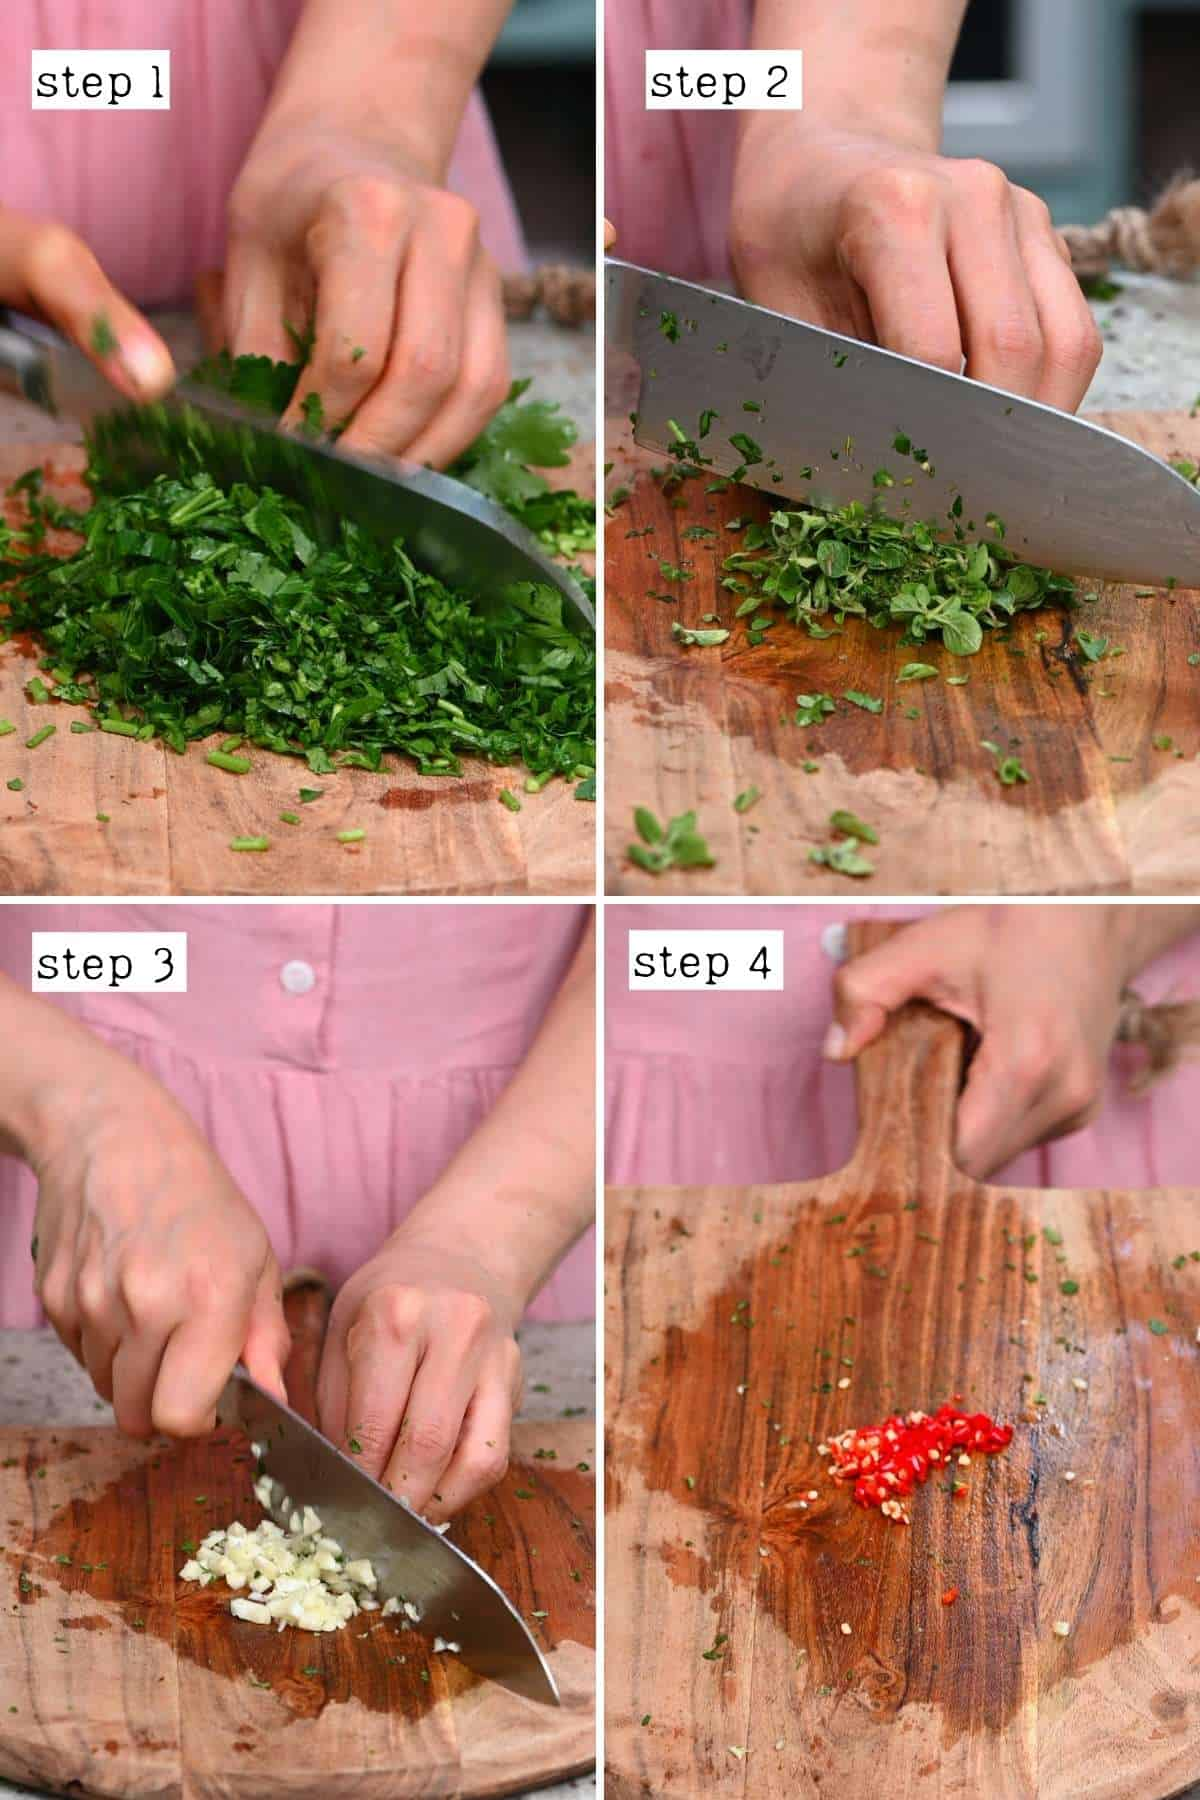 Steps for cutting ingredients for chimichurri